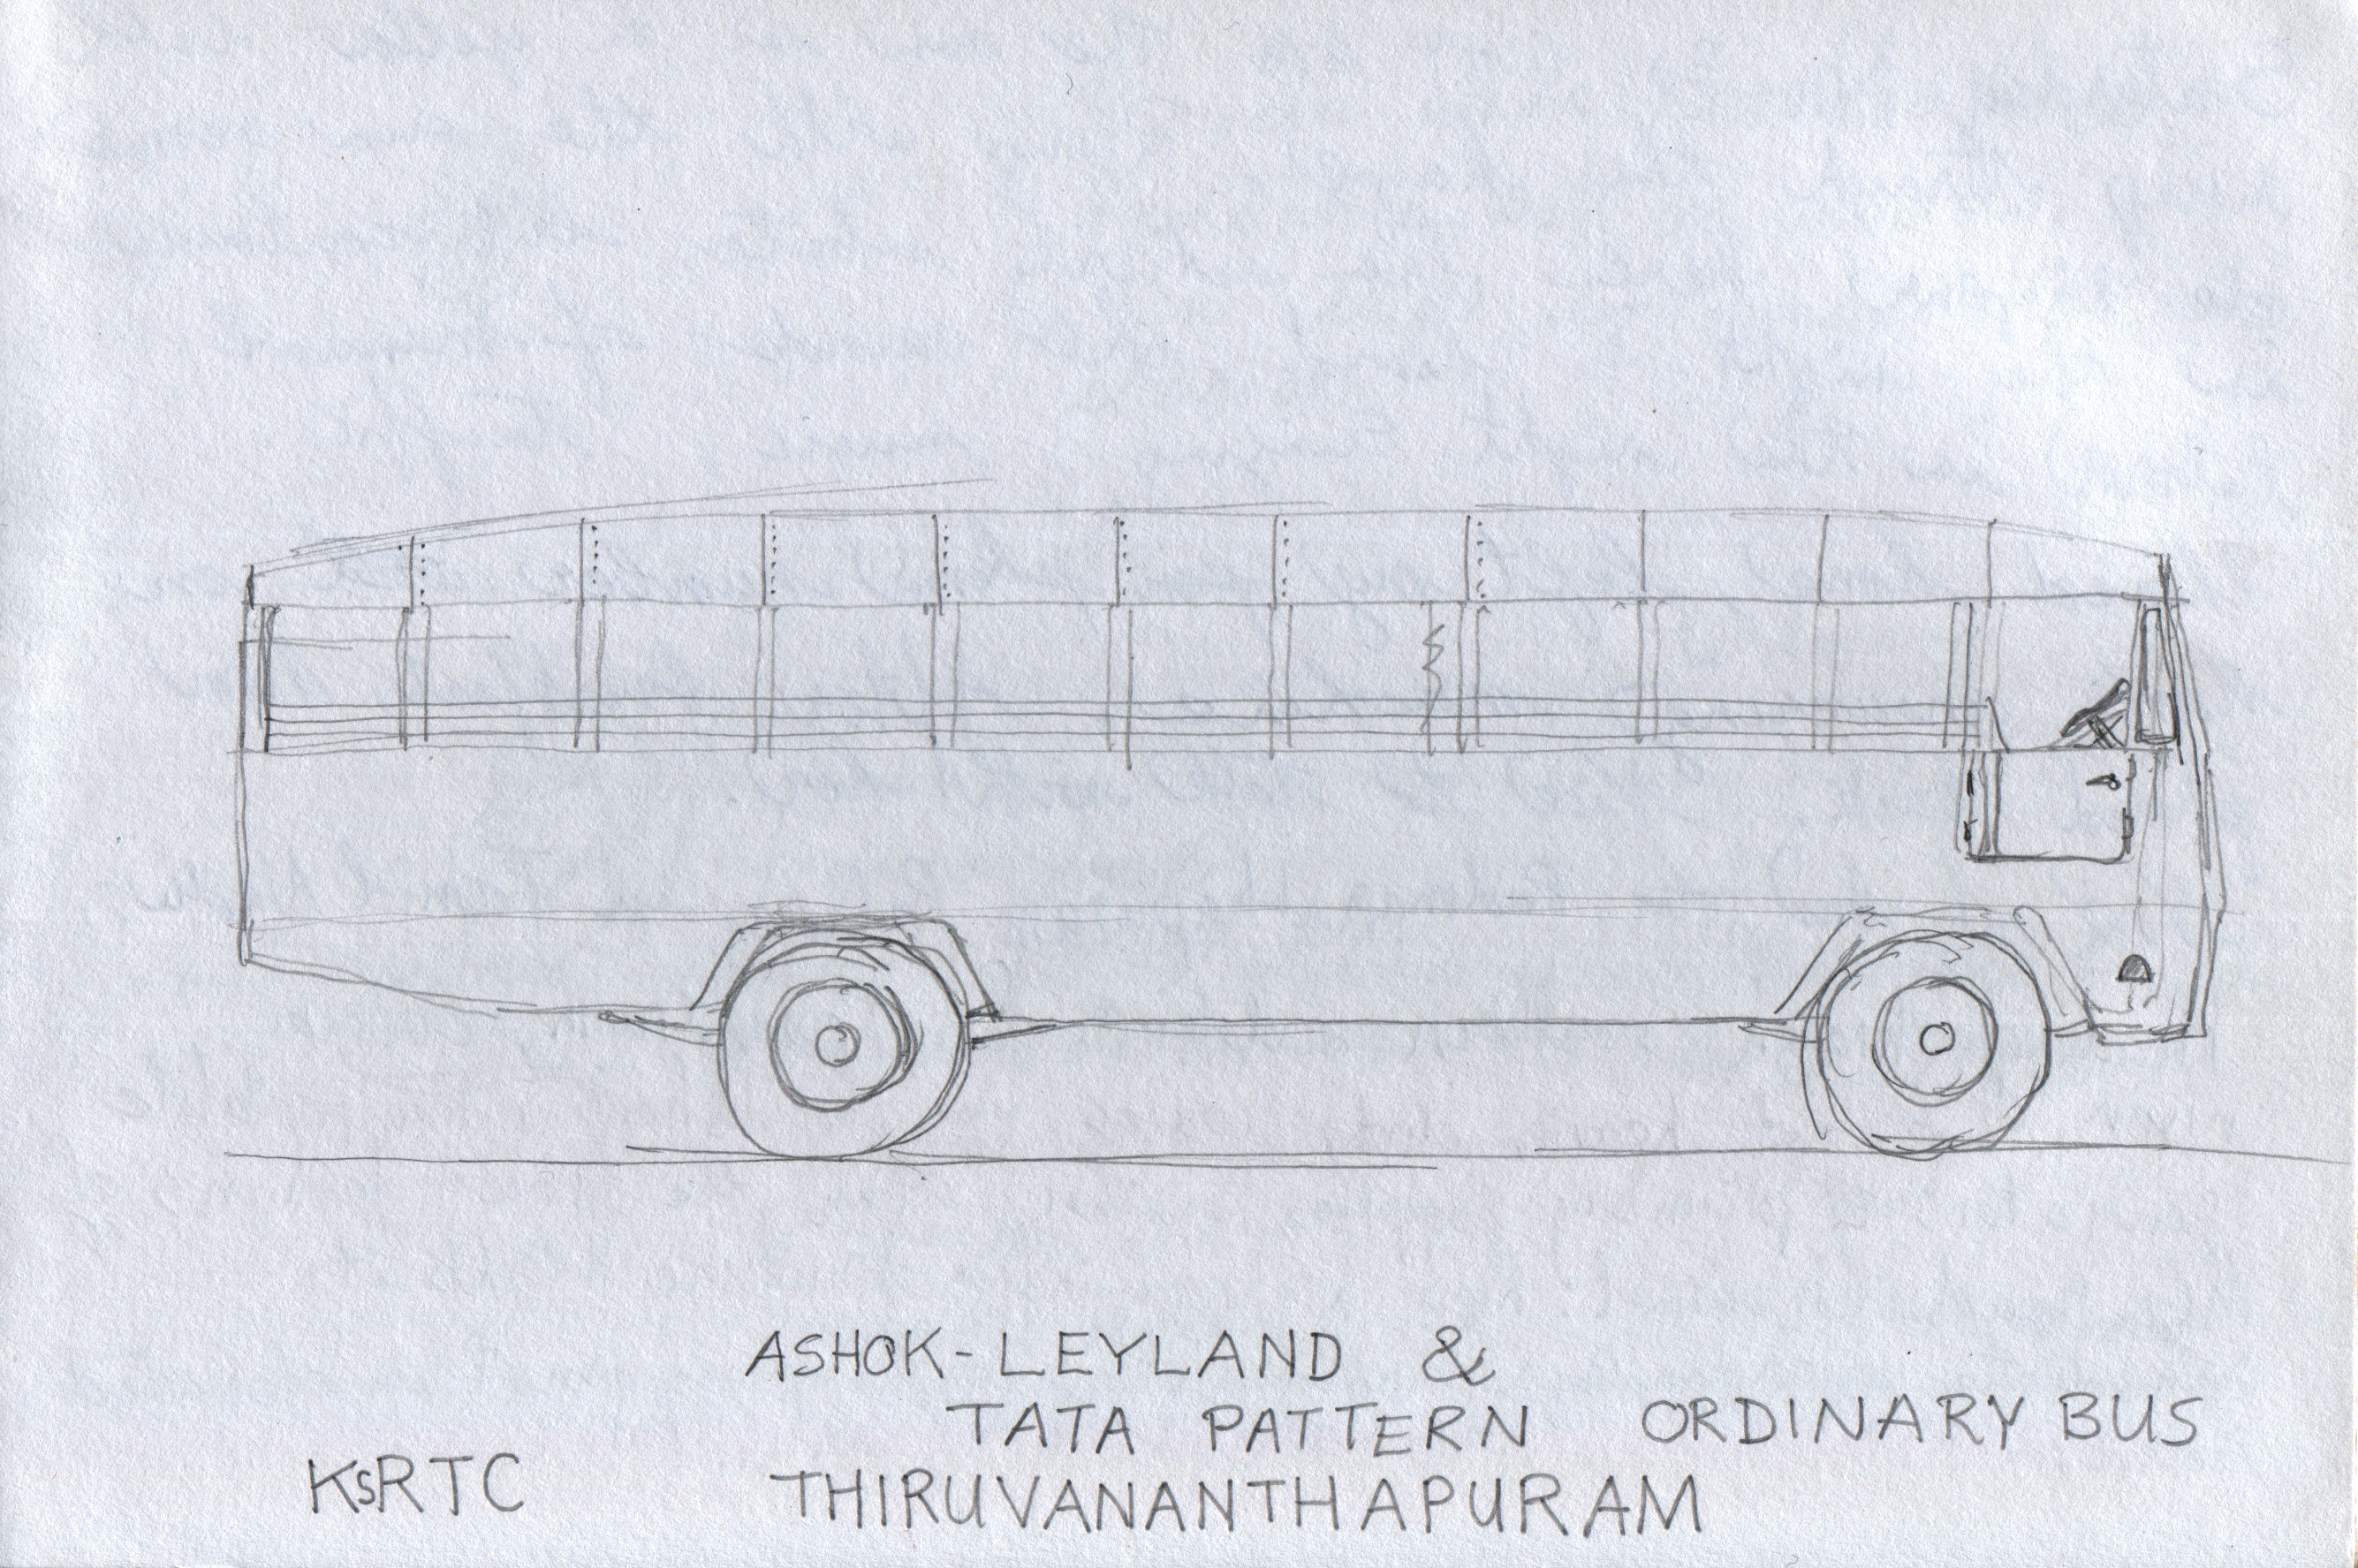 07 ksrtc ordinary buses ingo 39 s sketchbook for Window manufacturers near me